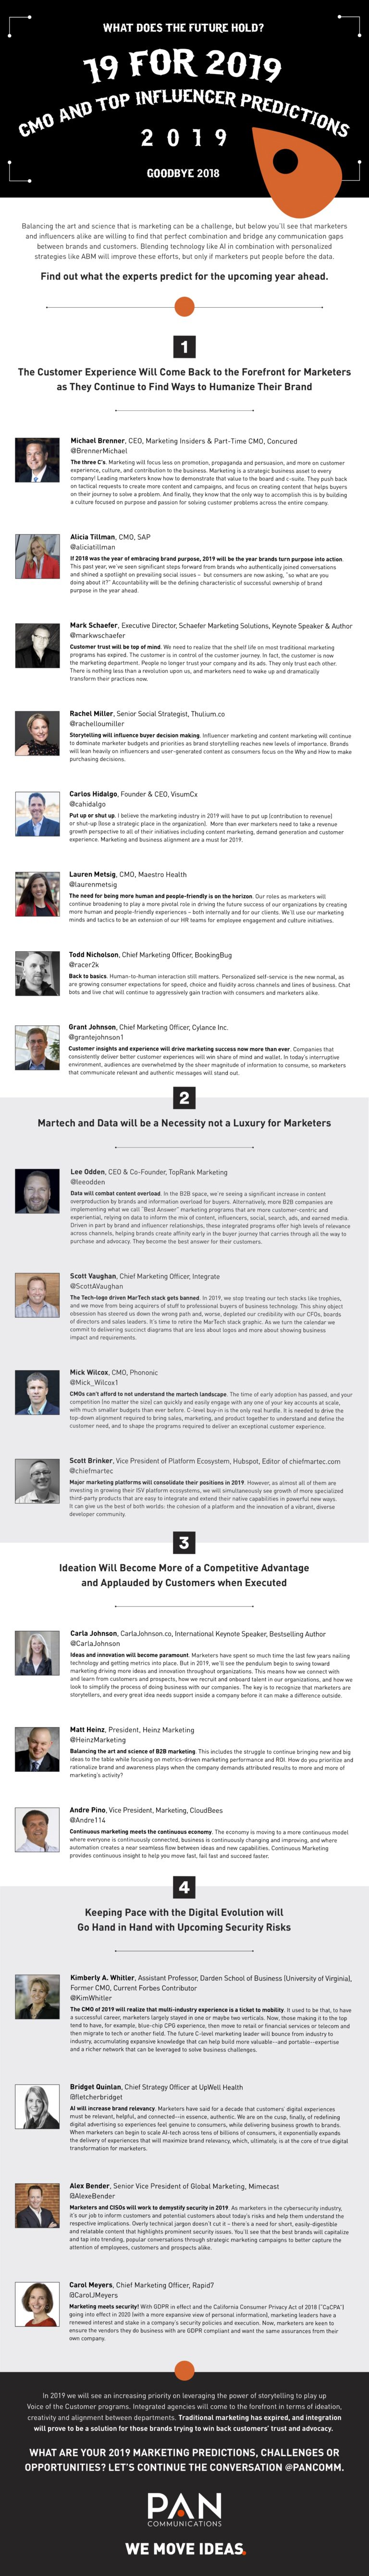 19 Expert Digital Marketing Predictions infographic